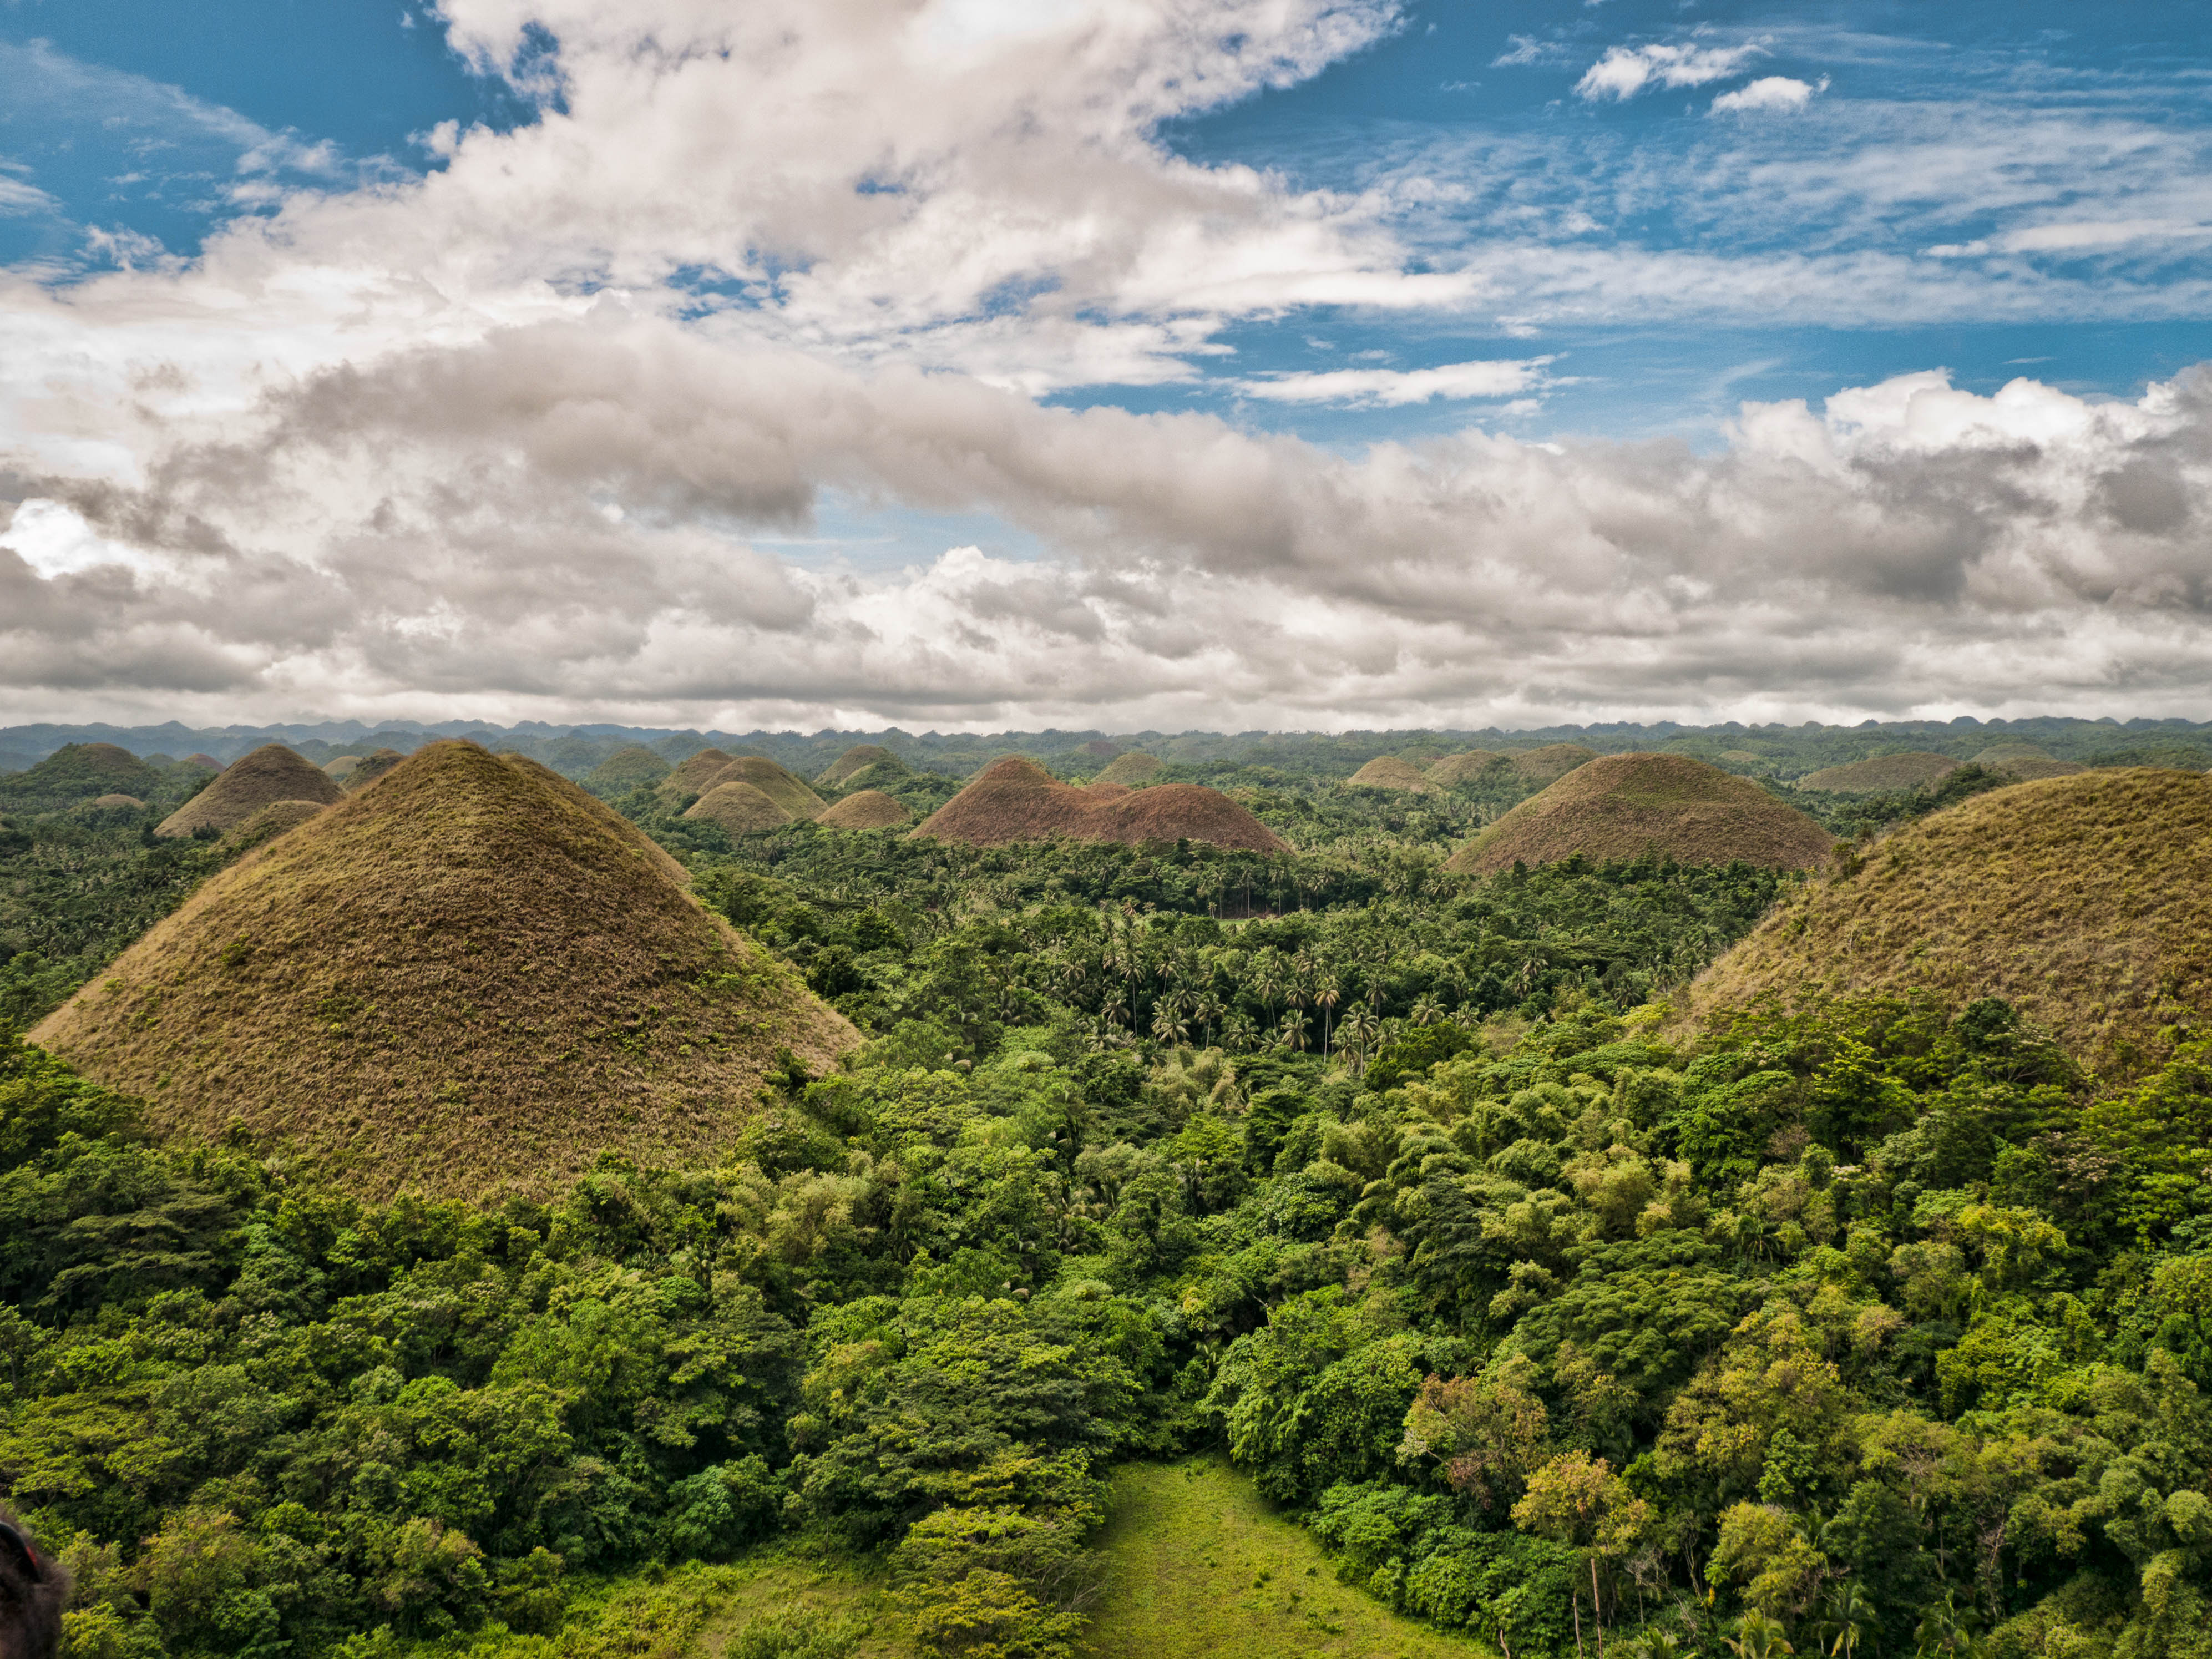 Chocolate Hills Natural Monument - Chocolate Hills Natural Monument